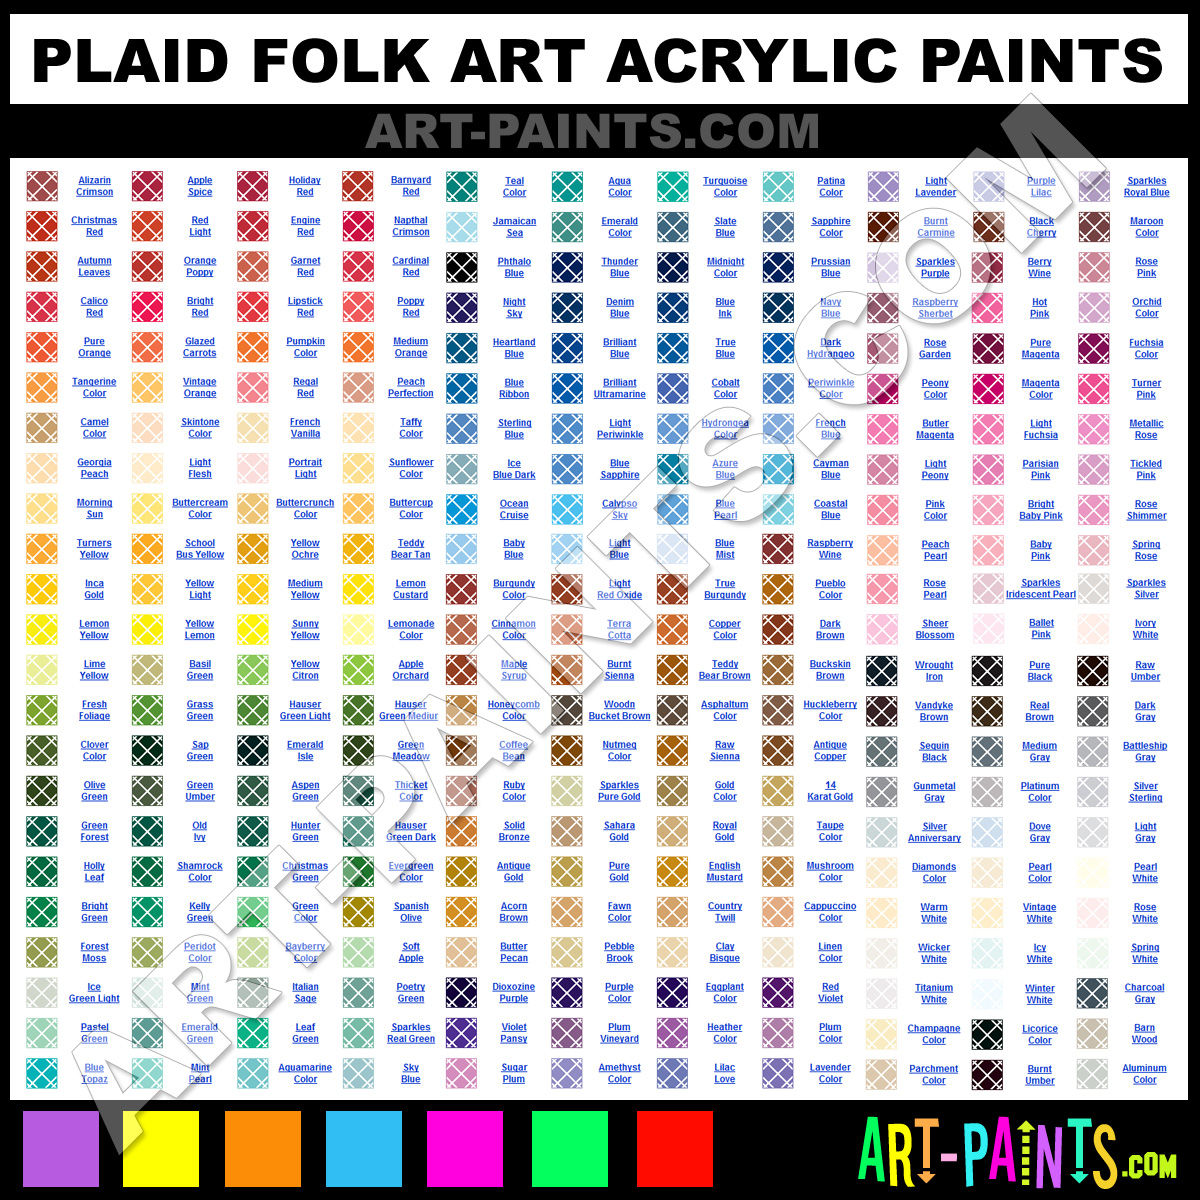 Folk art acrylic paint color chart - Plaid Acrylics Plaid Folk Art Paints